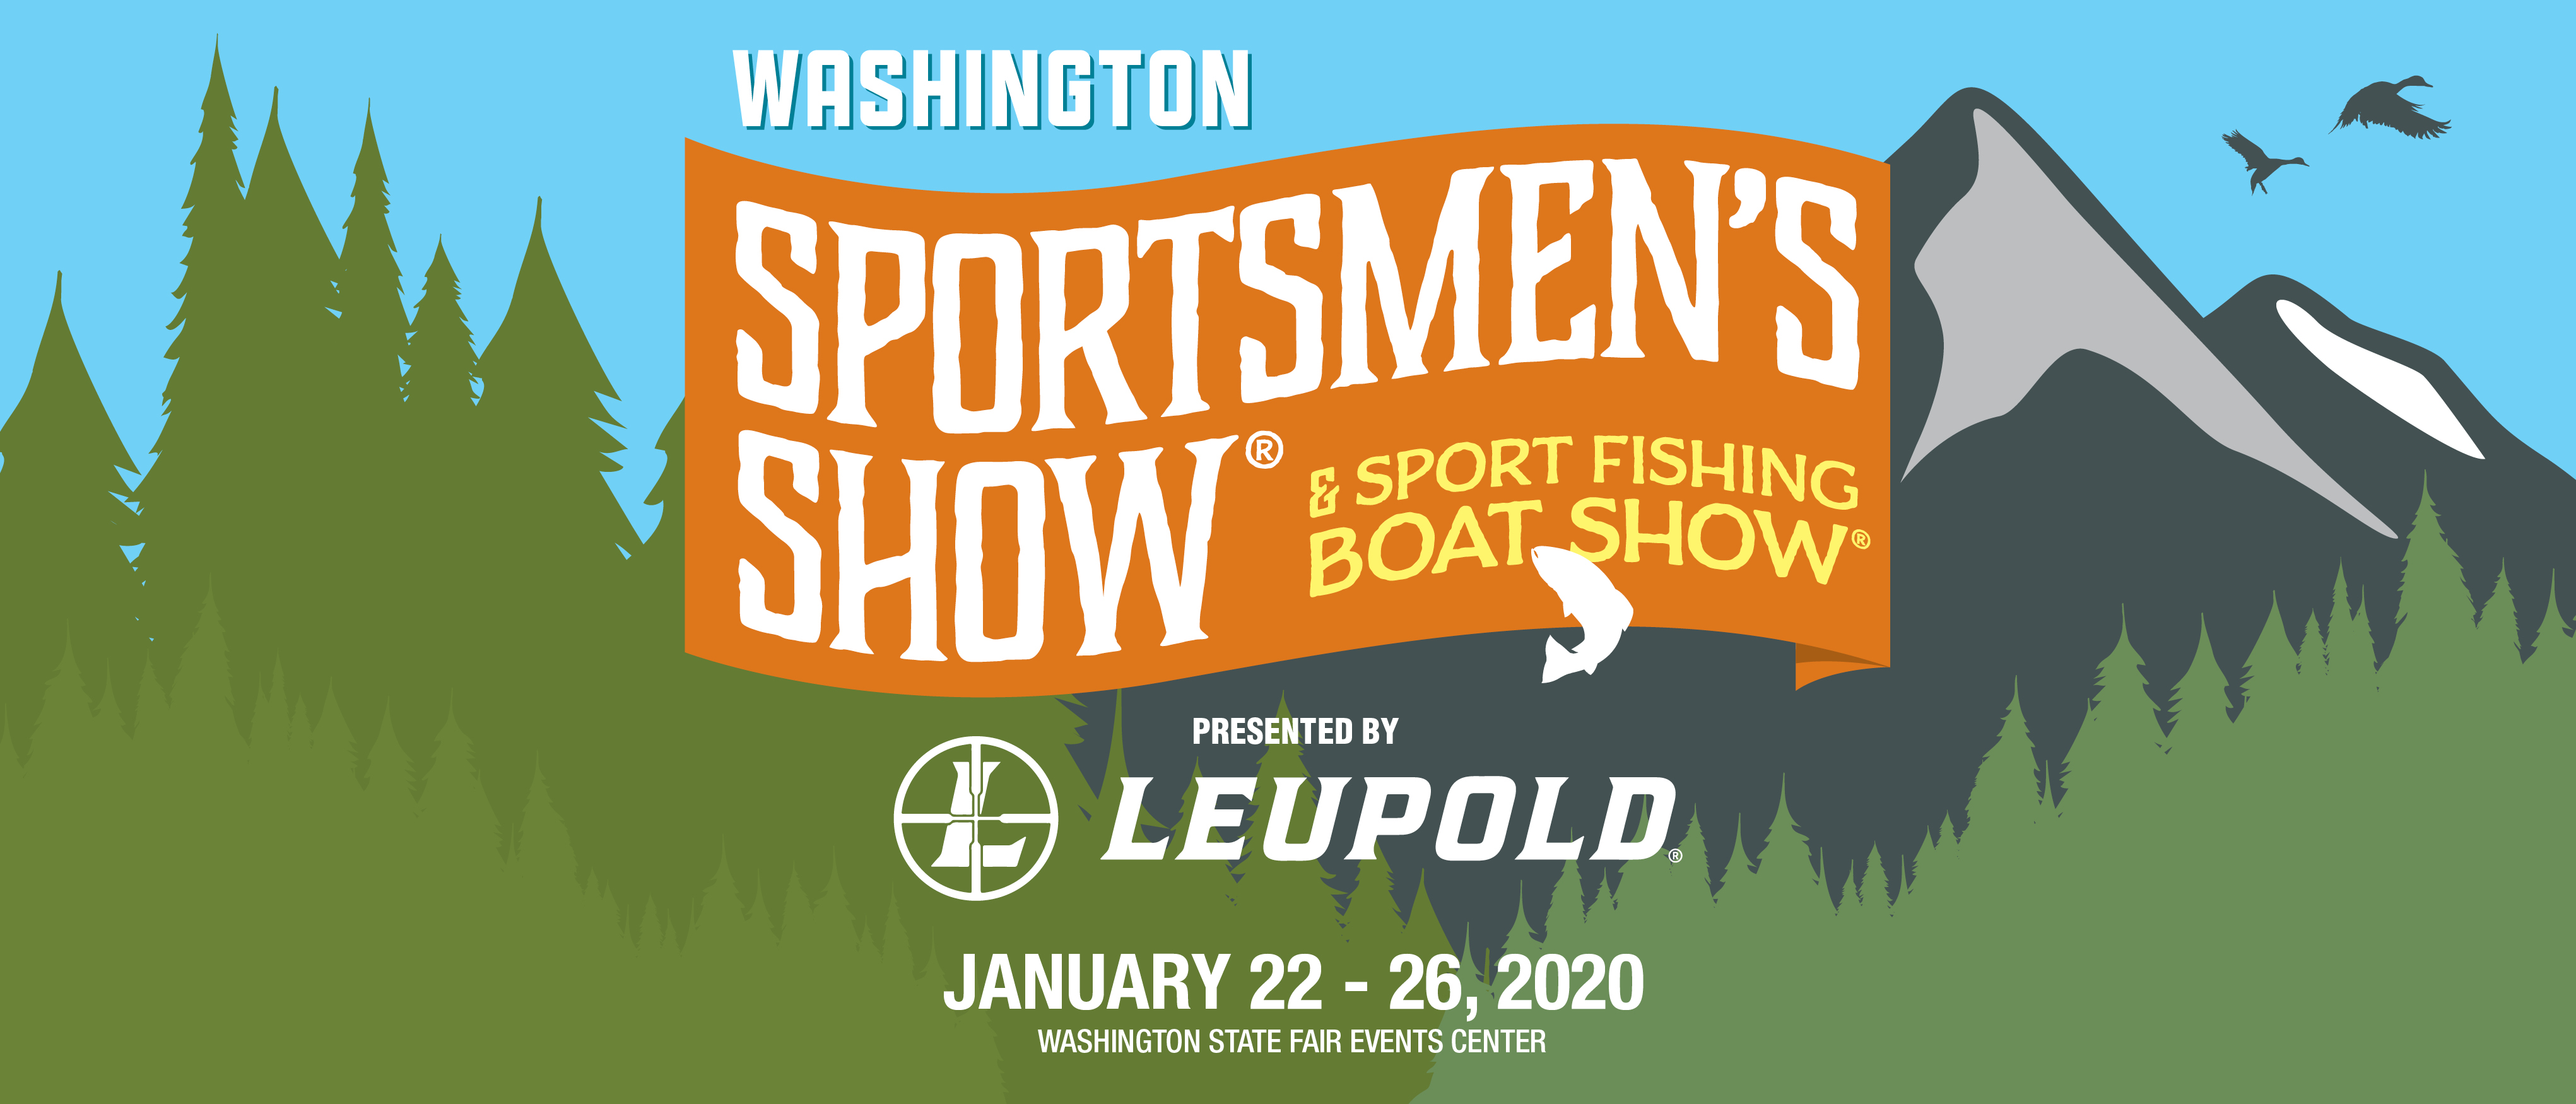 Washington sports show